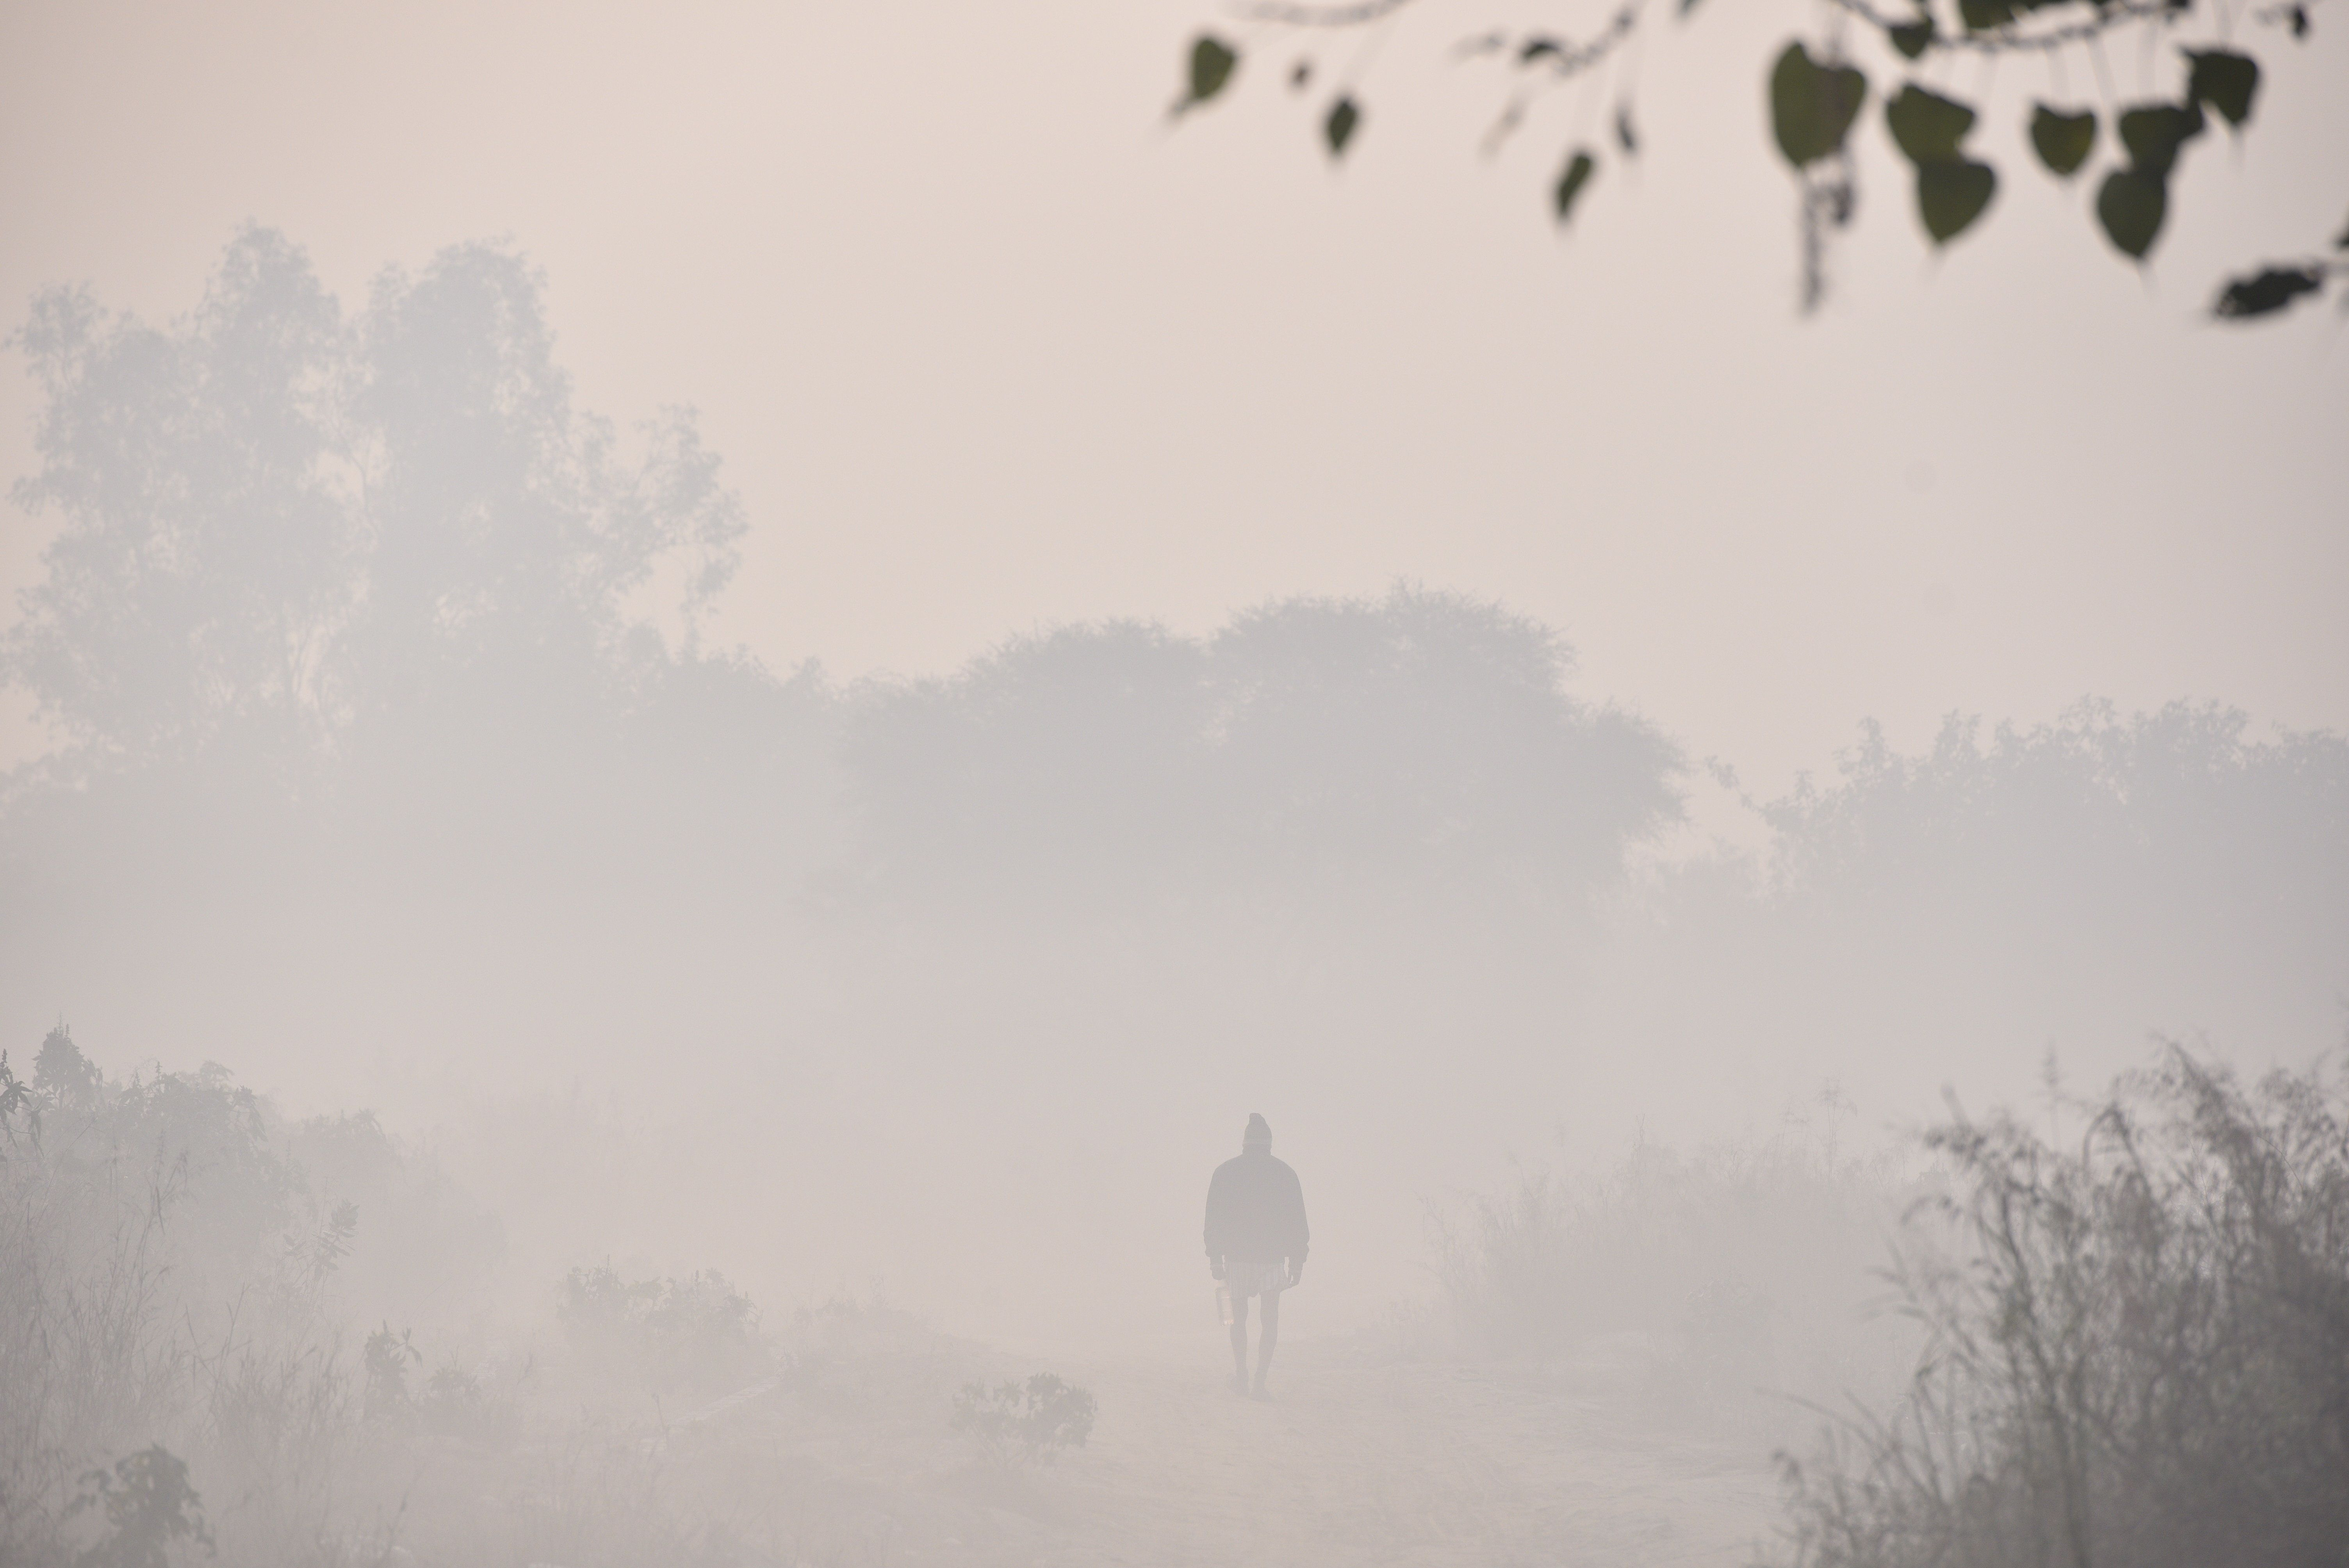 Life Expectancy Of Delhiites Will Increase By 3 Years If Air Quality Improves, Says